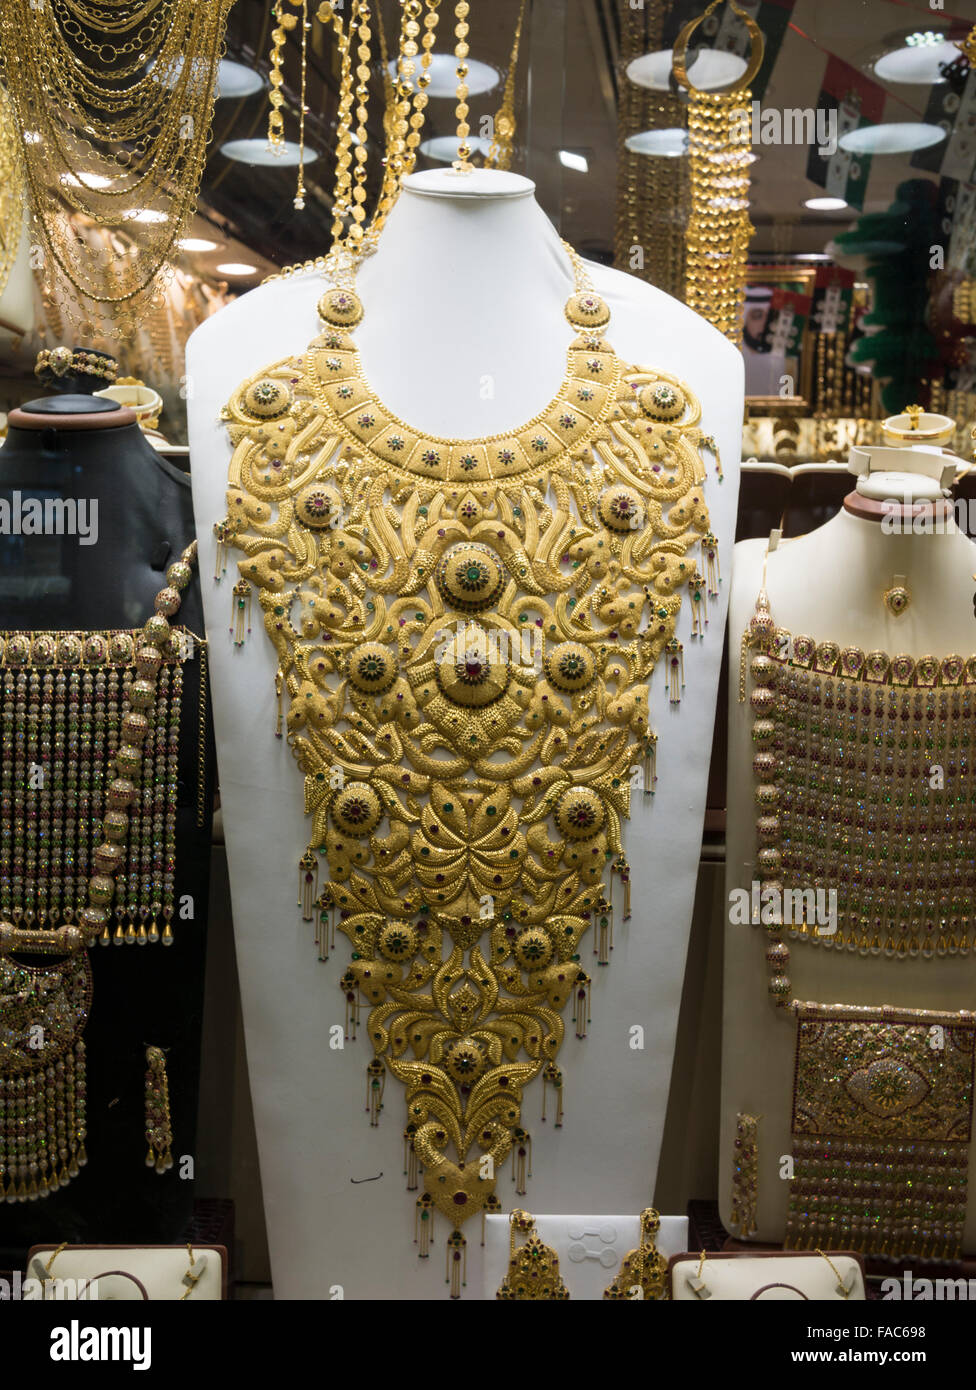 Window display of gold necklace and ornaments in Dubai gold souk, United Arab Emirates (UAE). - Stock Image